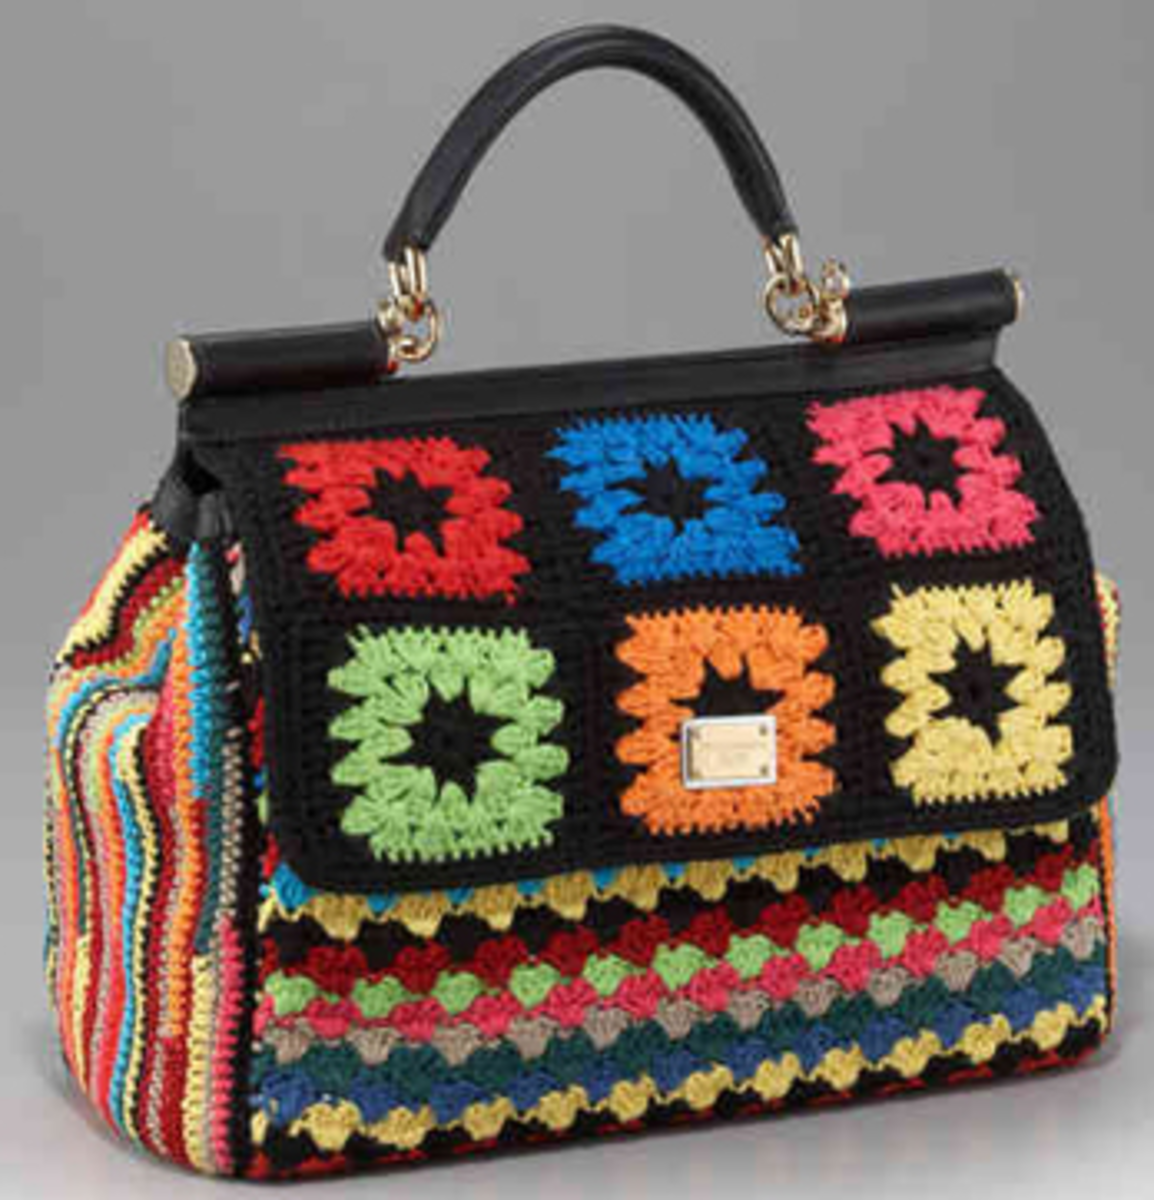 Crochet purse for sale. (Couldn't find it at the online store).